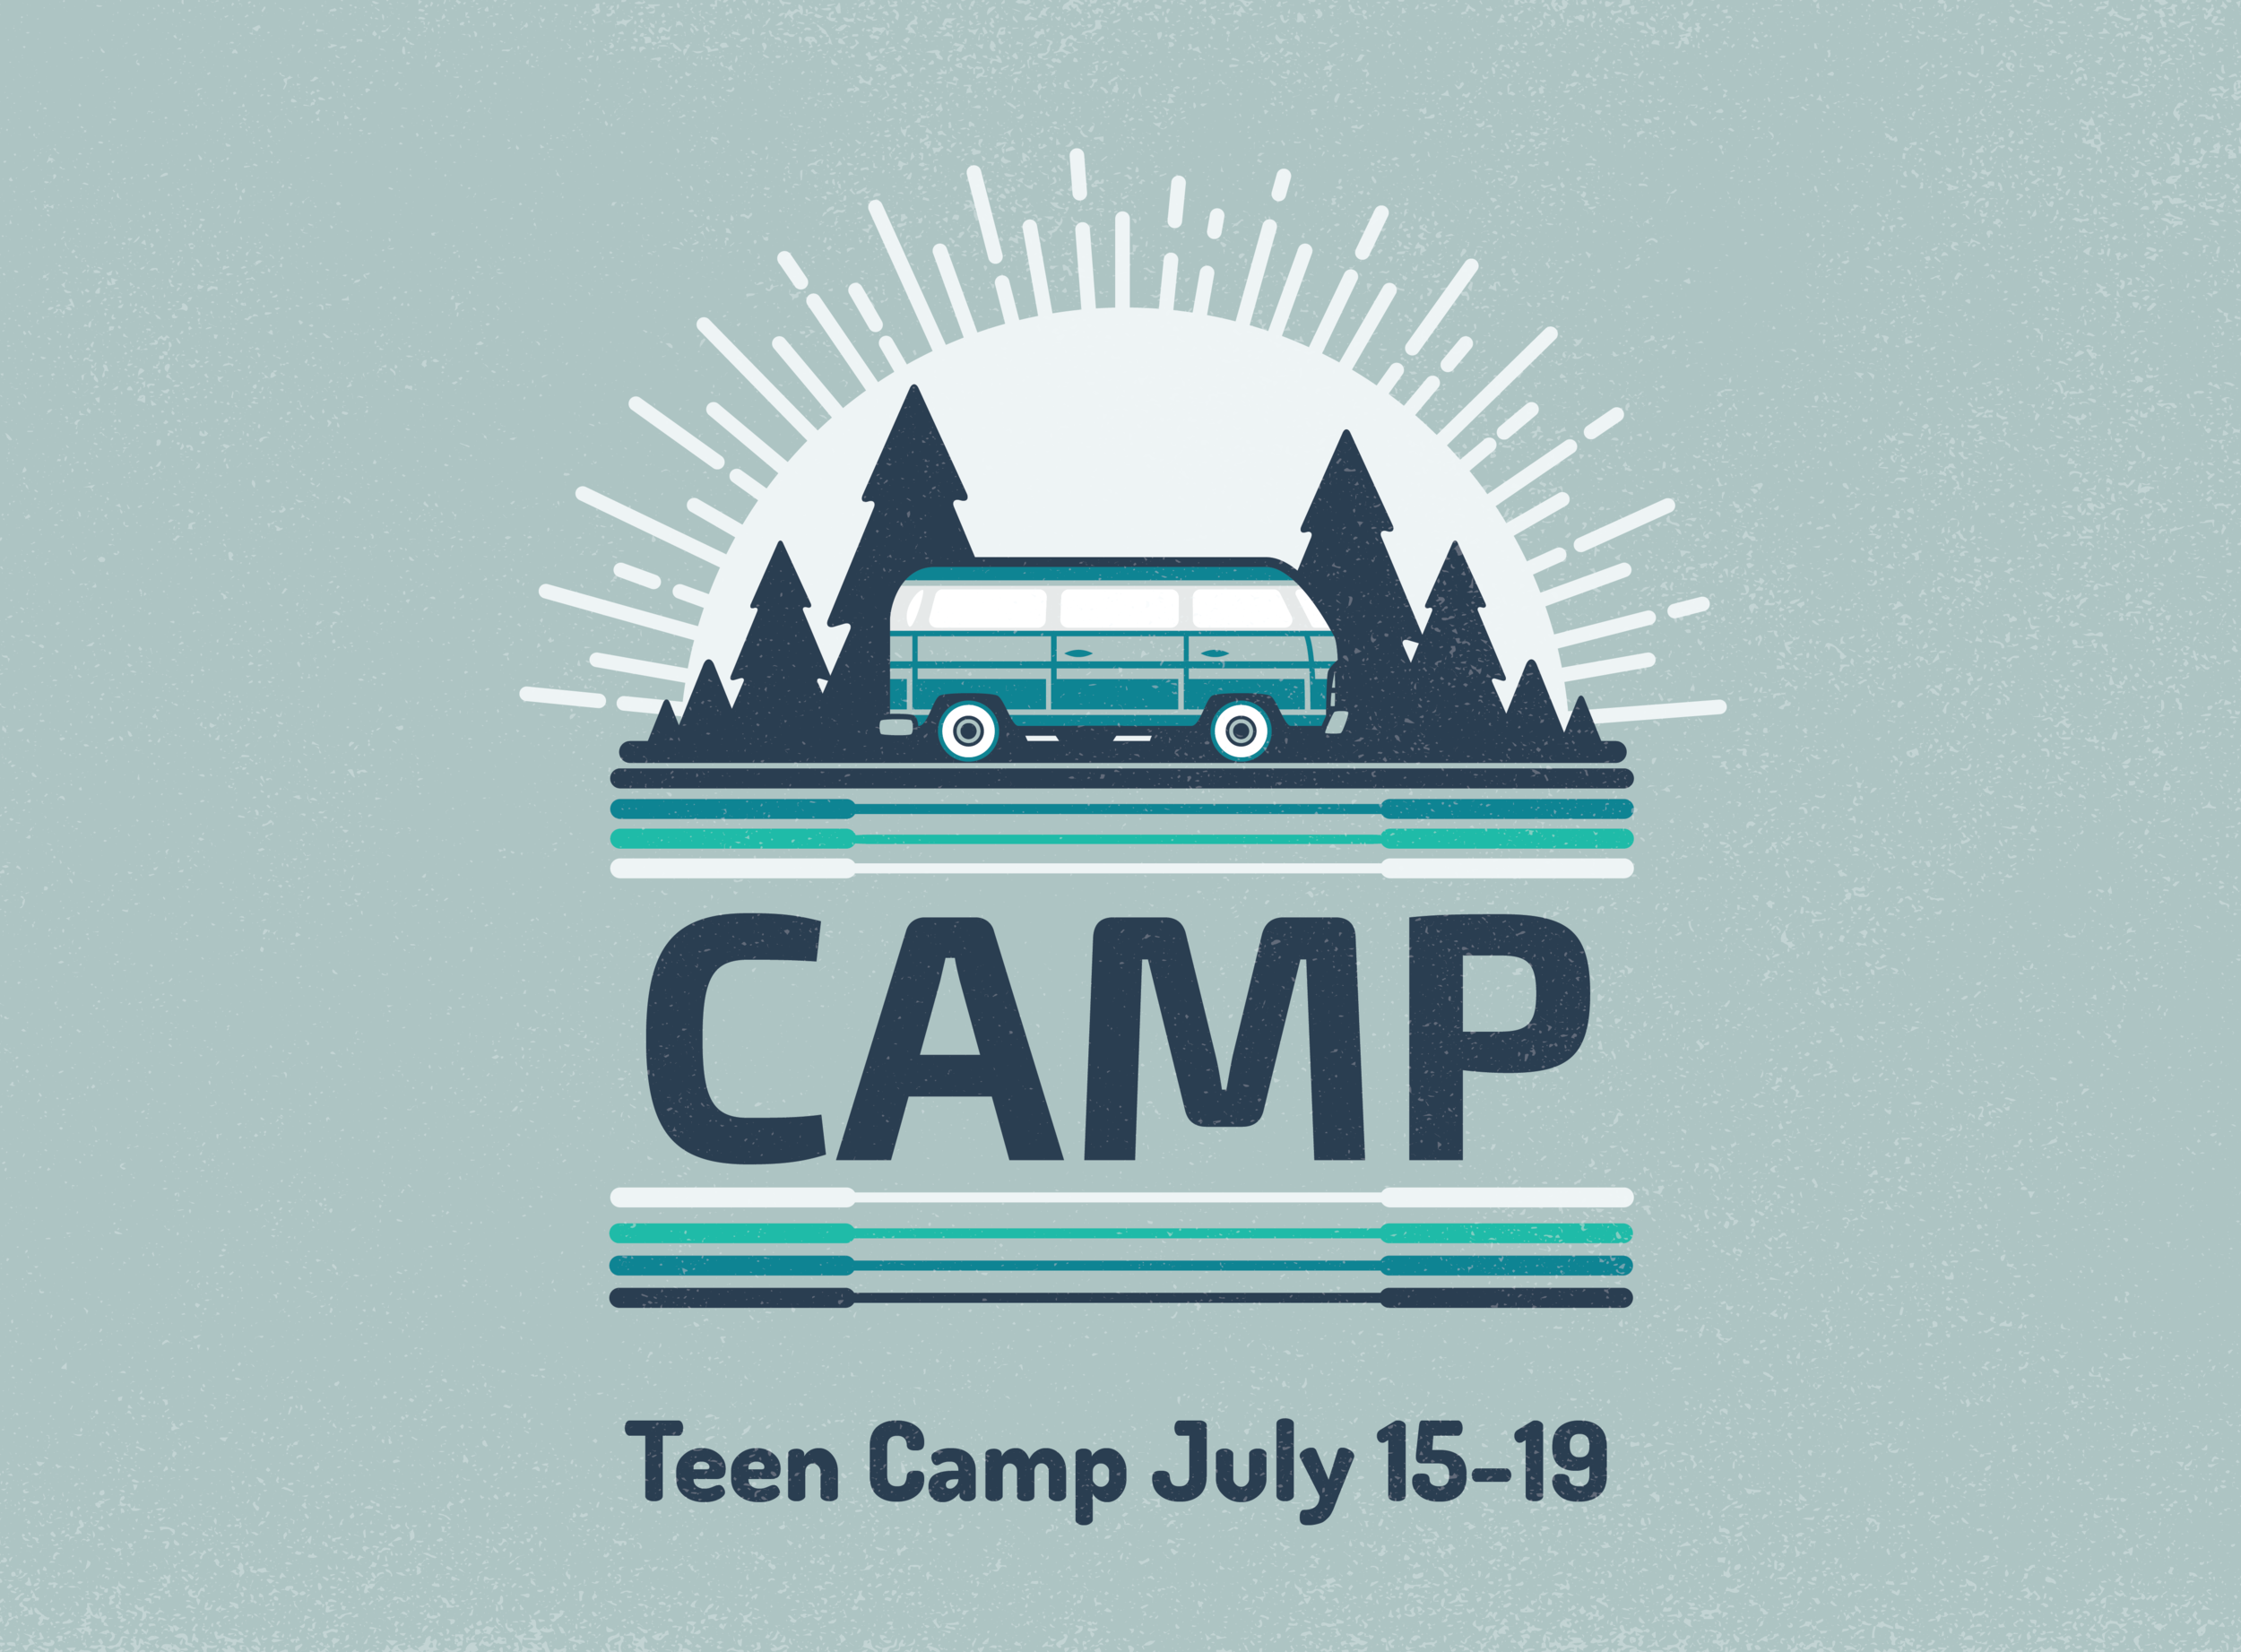 Teen_Camp_3_slide_2019.png